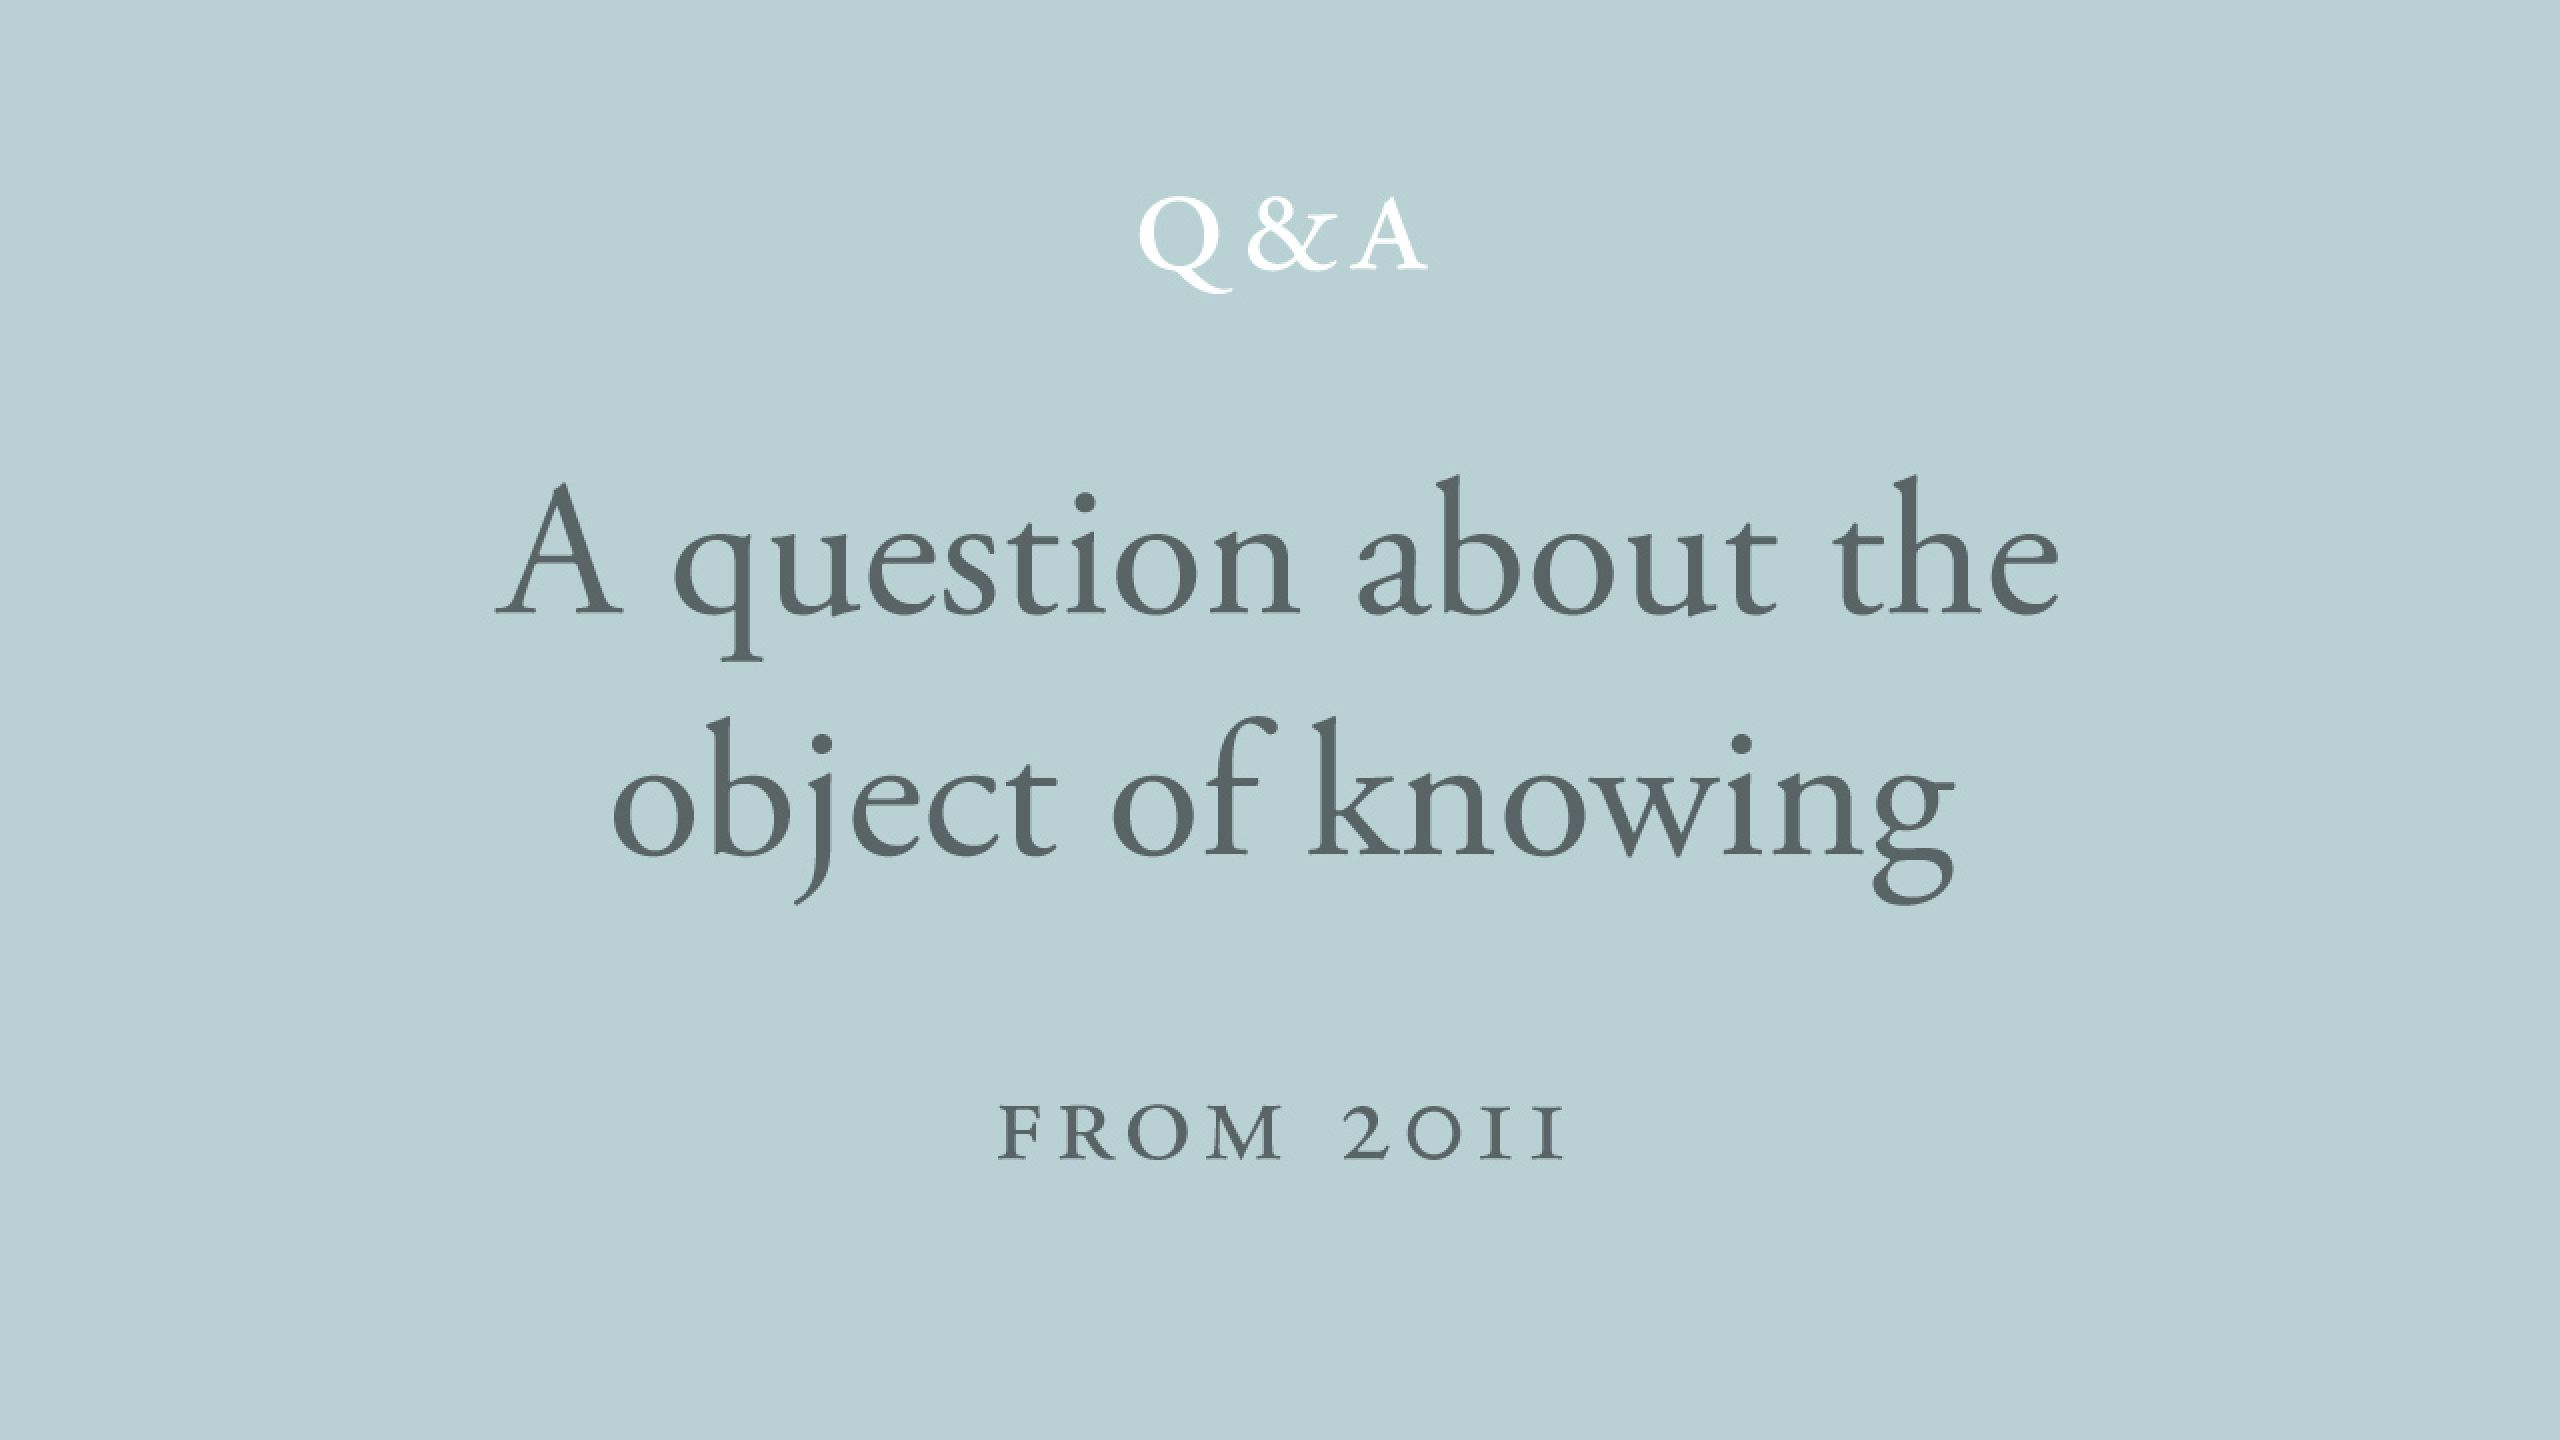 What did Shri Atmananda mean by 'The object of knowing is always in knowledge'?